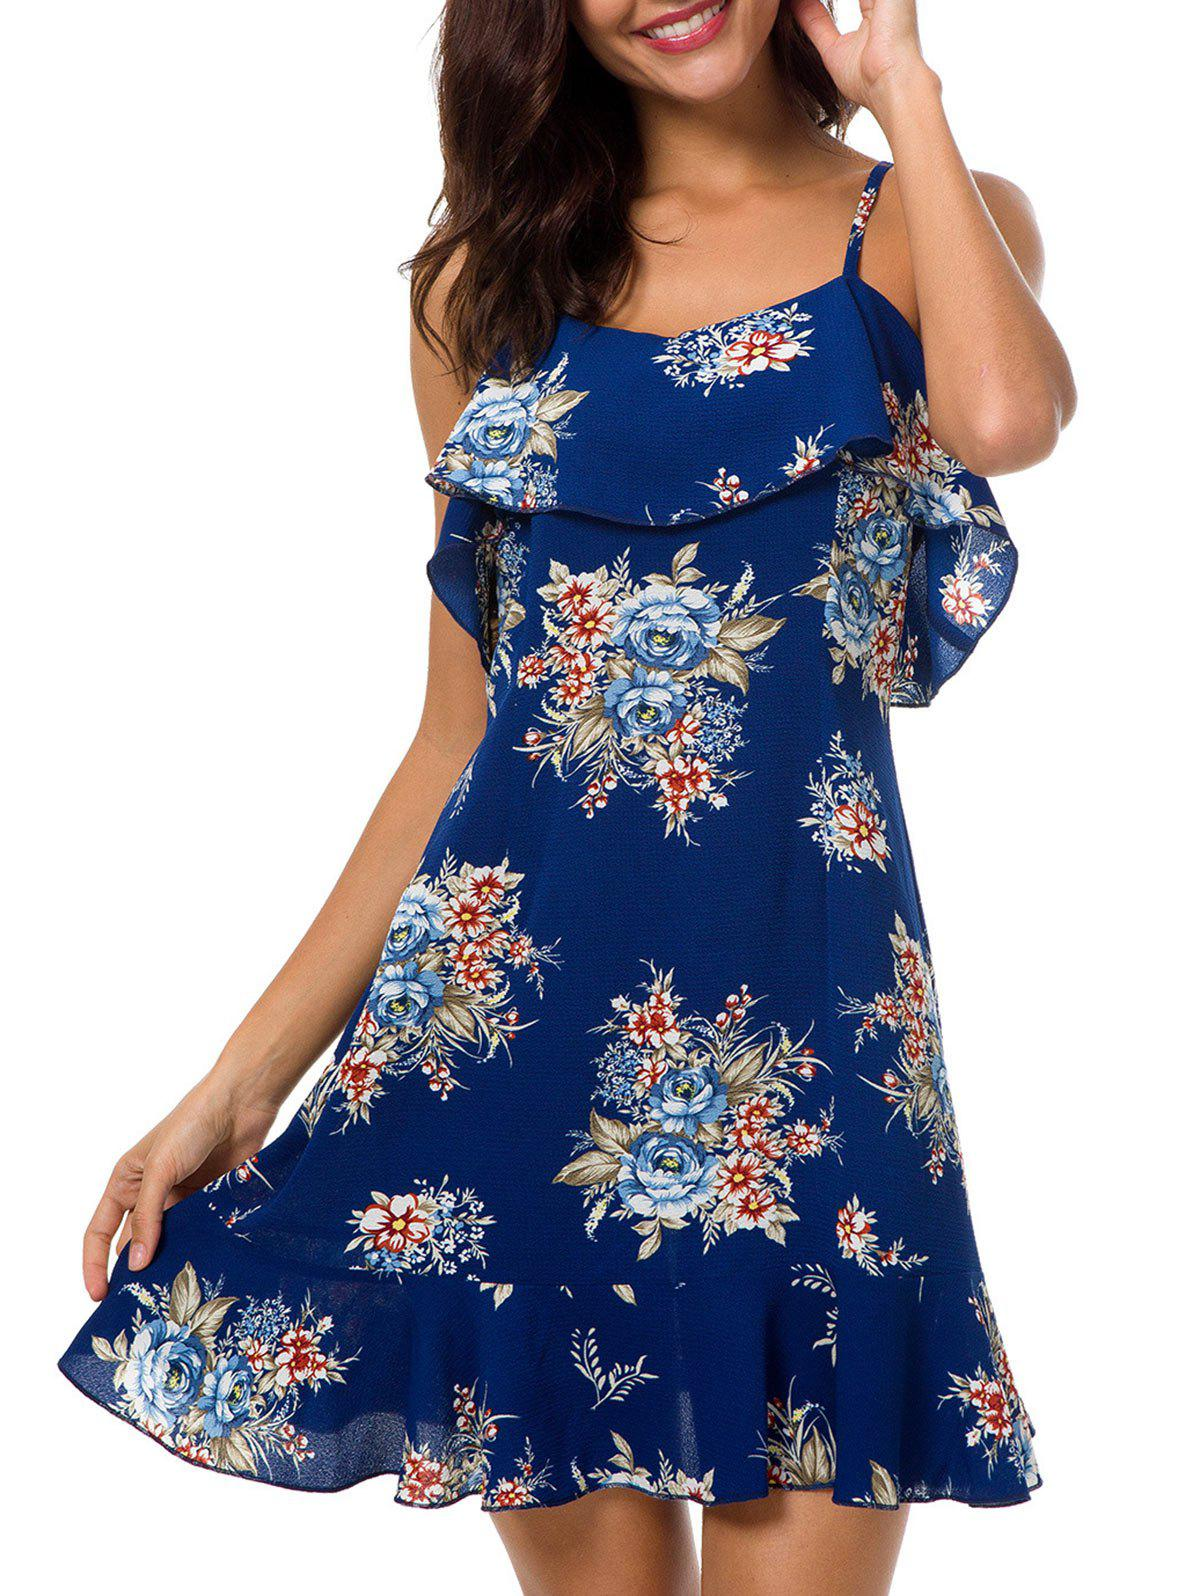 Open Back Flounce Trim Floral Dress - DEEP BLUE S